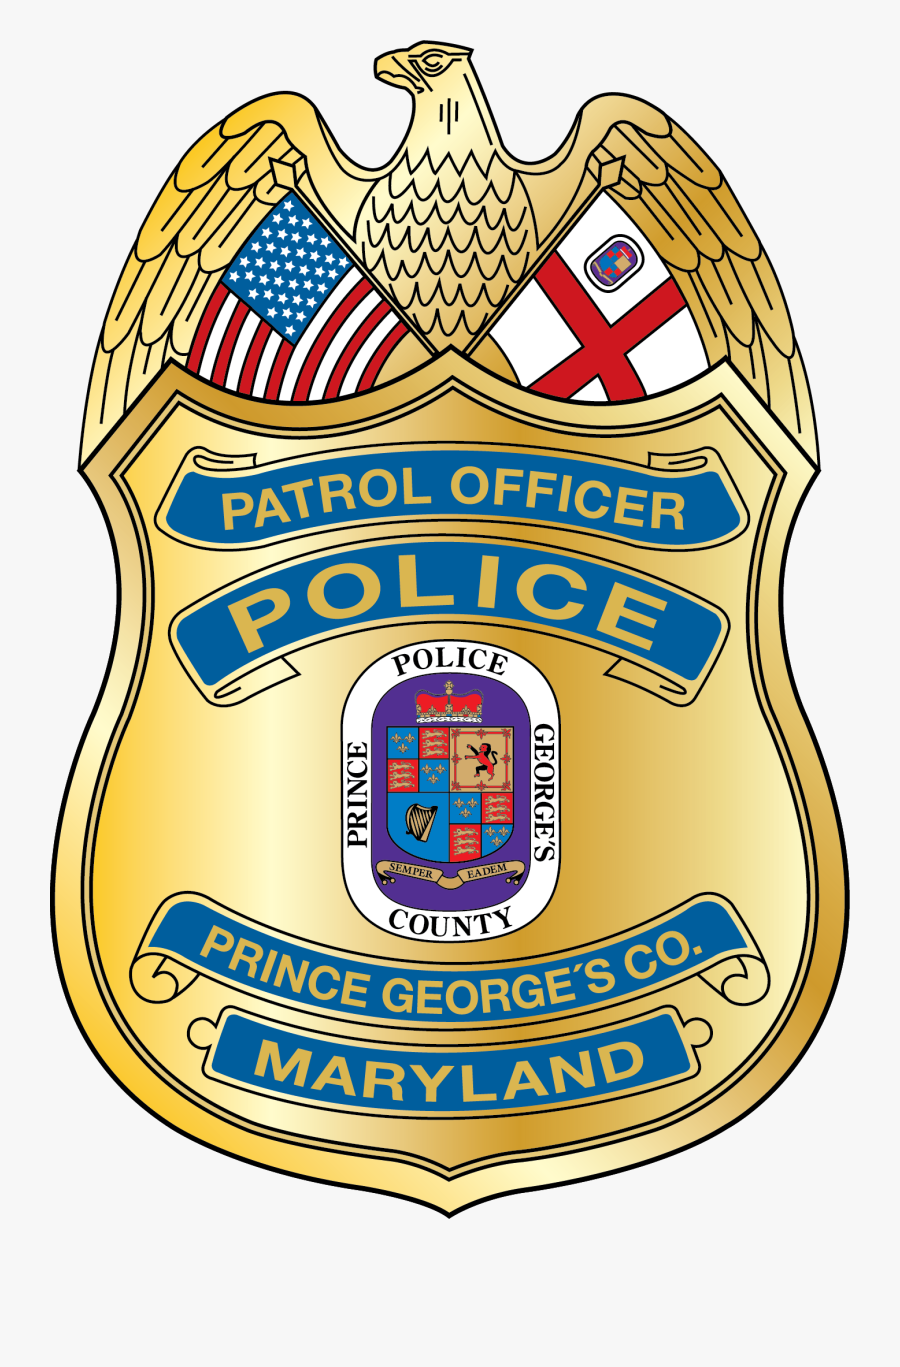 Prince George's County Police, Transparent Clipart